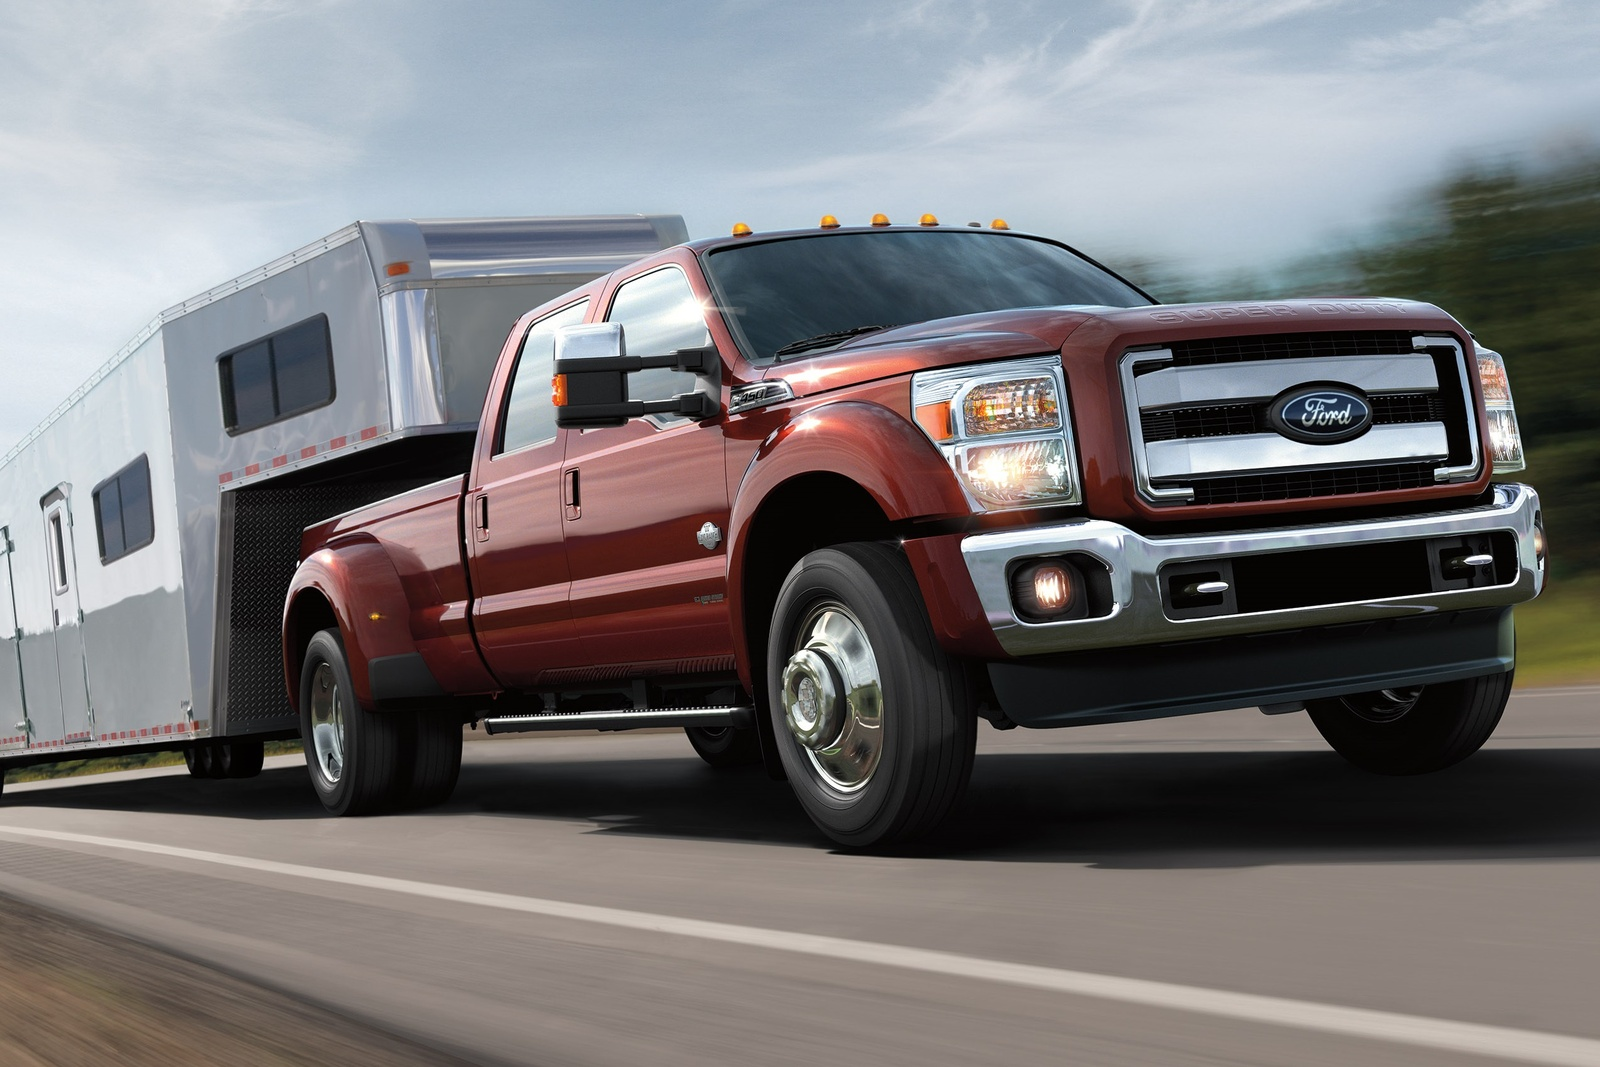 Most Expensive Truck In The World - Ford F-450 Platinum